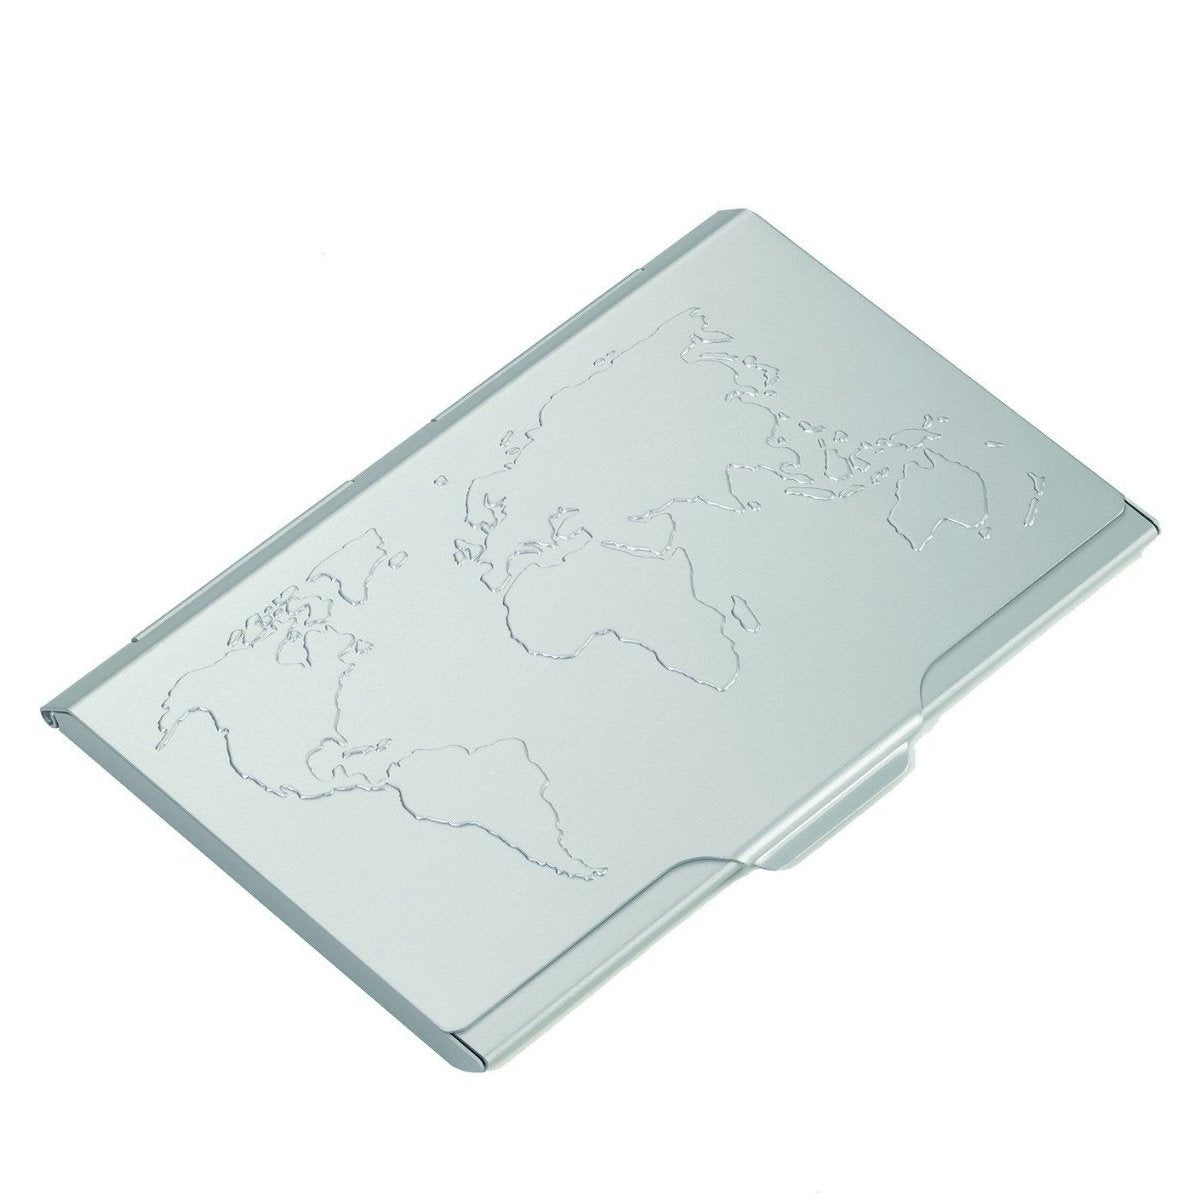 Troika Global Contacts Business Card Case with World Map